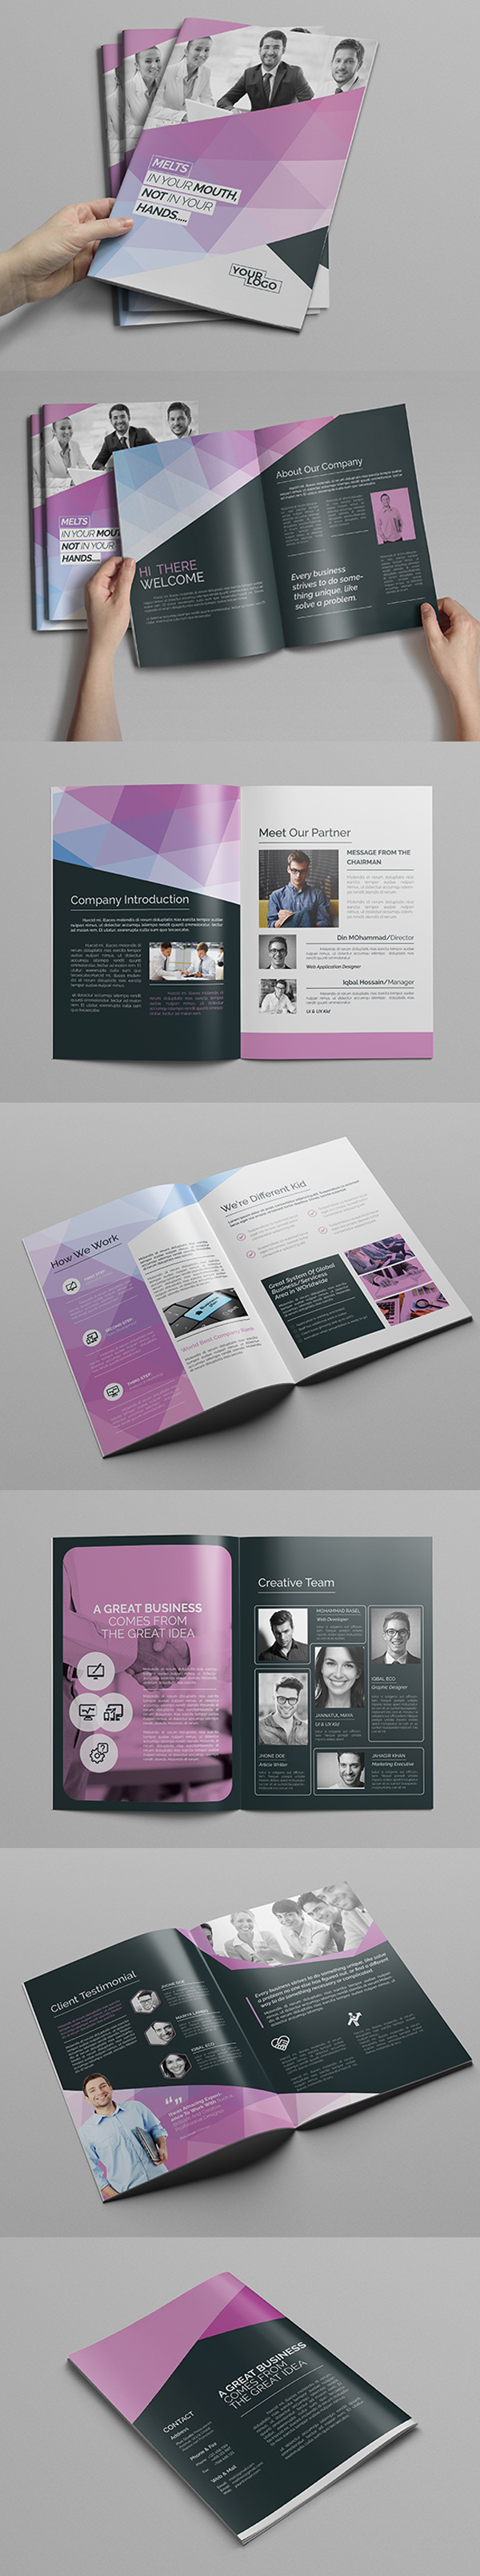 A4 Abstract Brochure Design Template